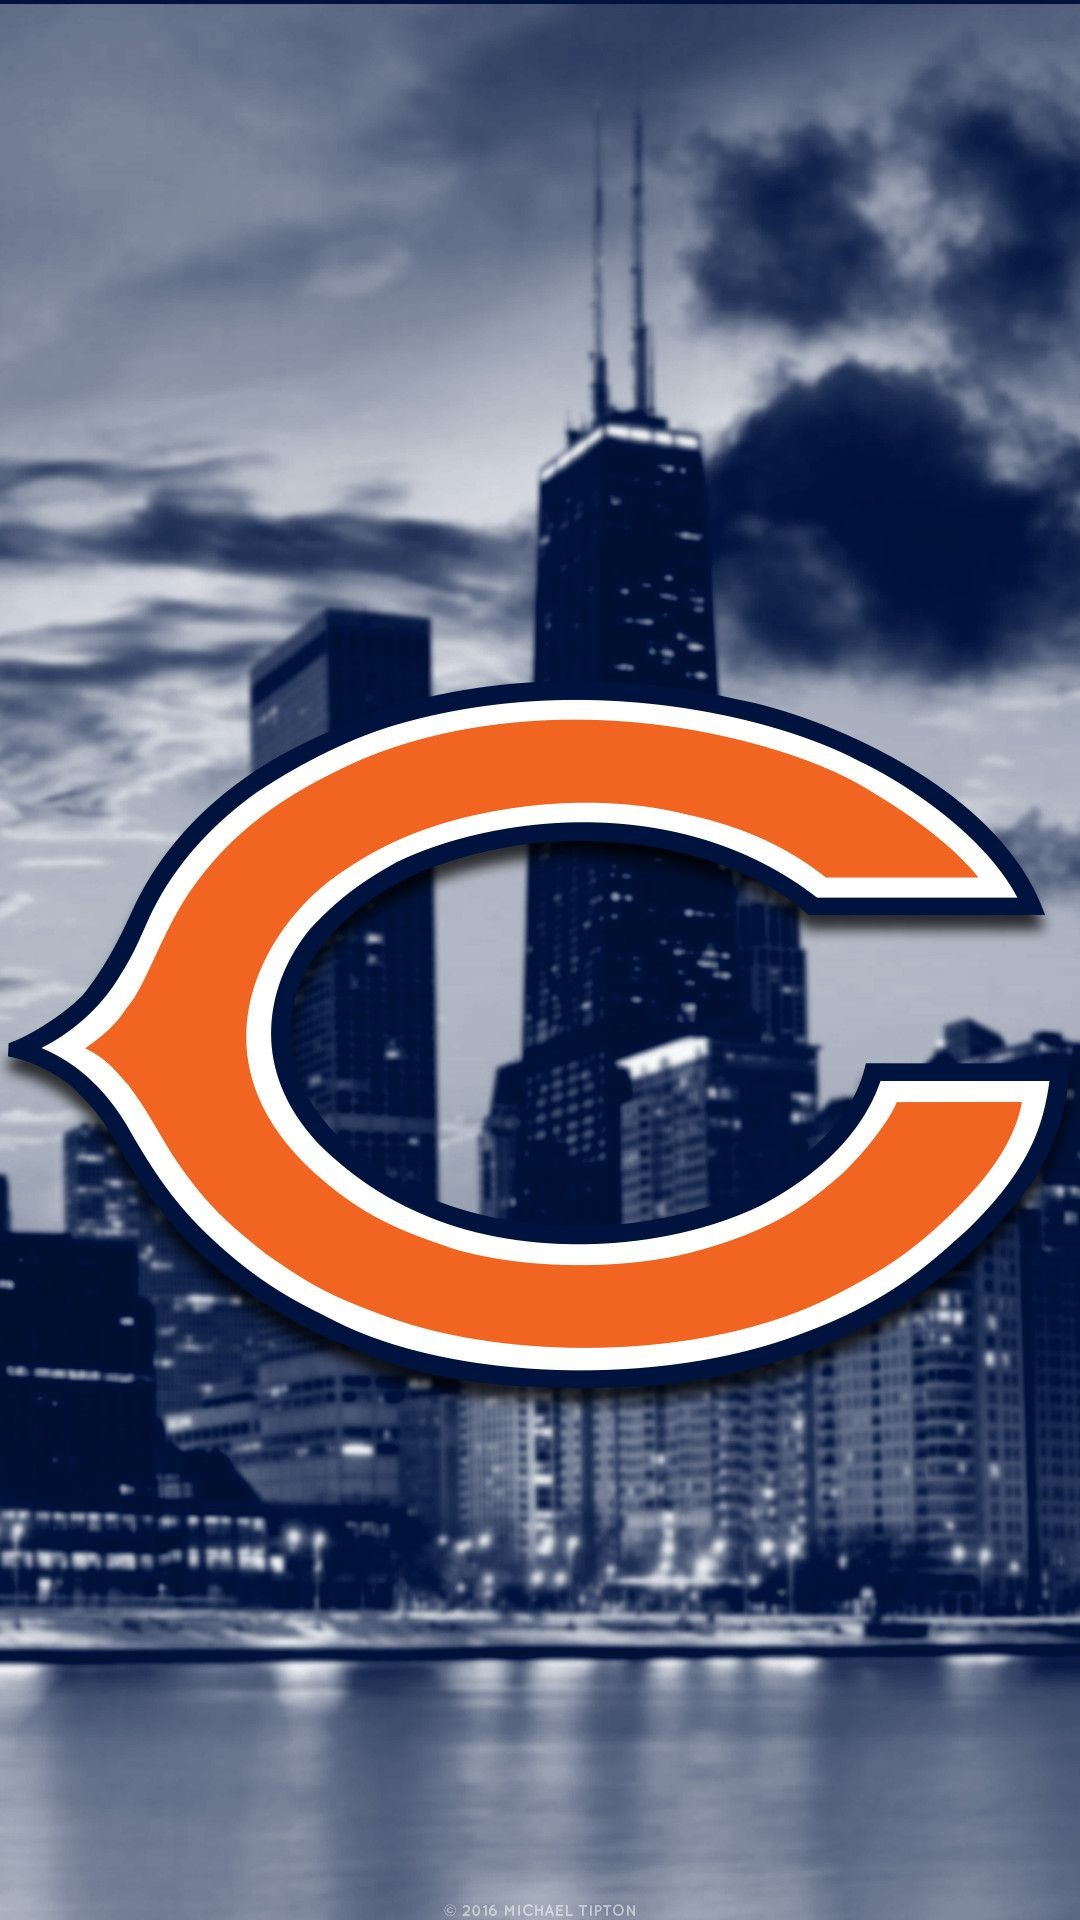 1080x1920 Chicago Cubs 2018 Wallpapers Wallpaper Cave. Hd Chicago Bears Wallpapers  1920x1080